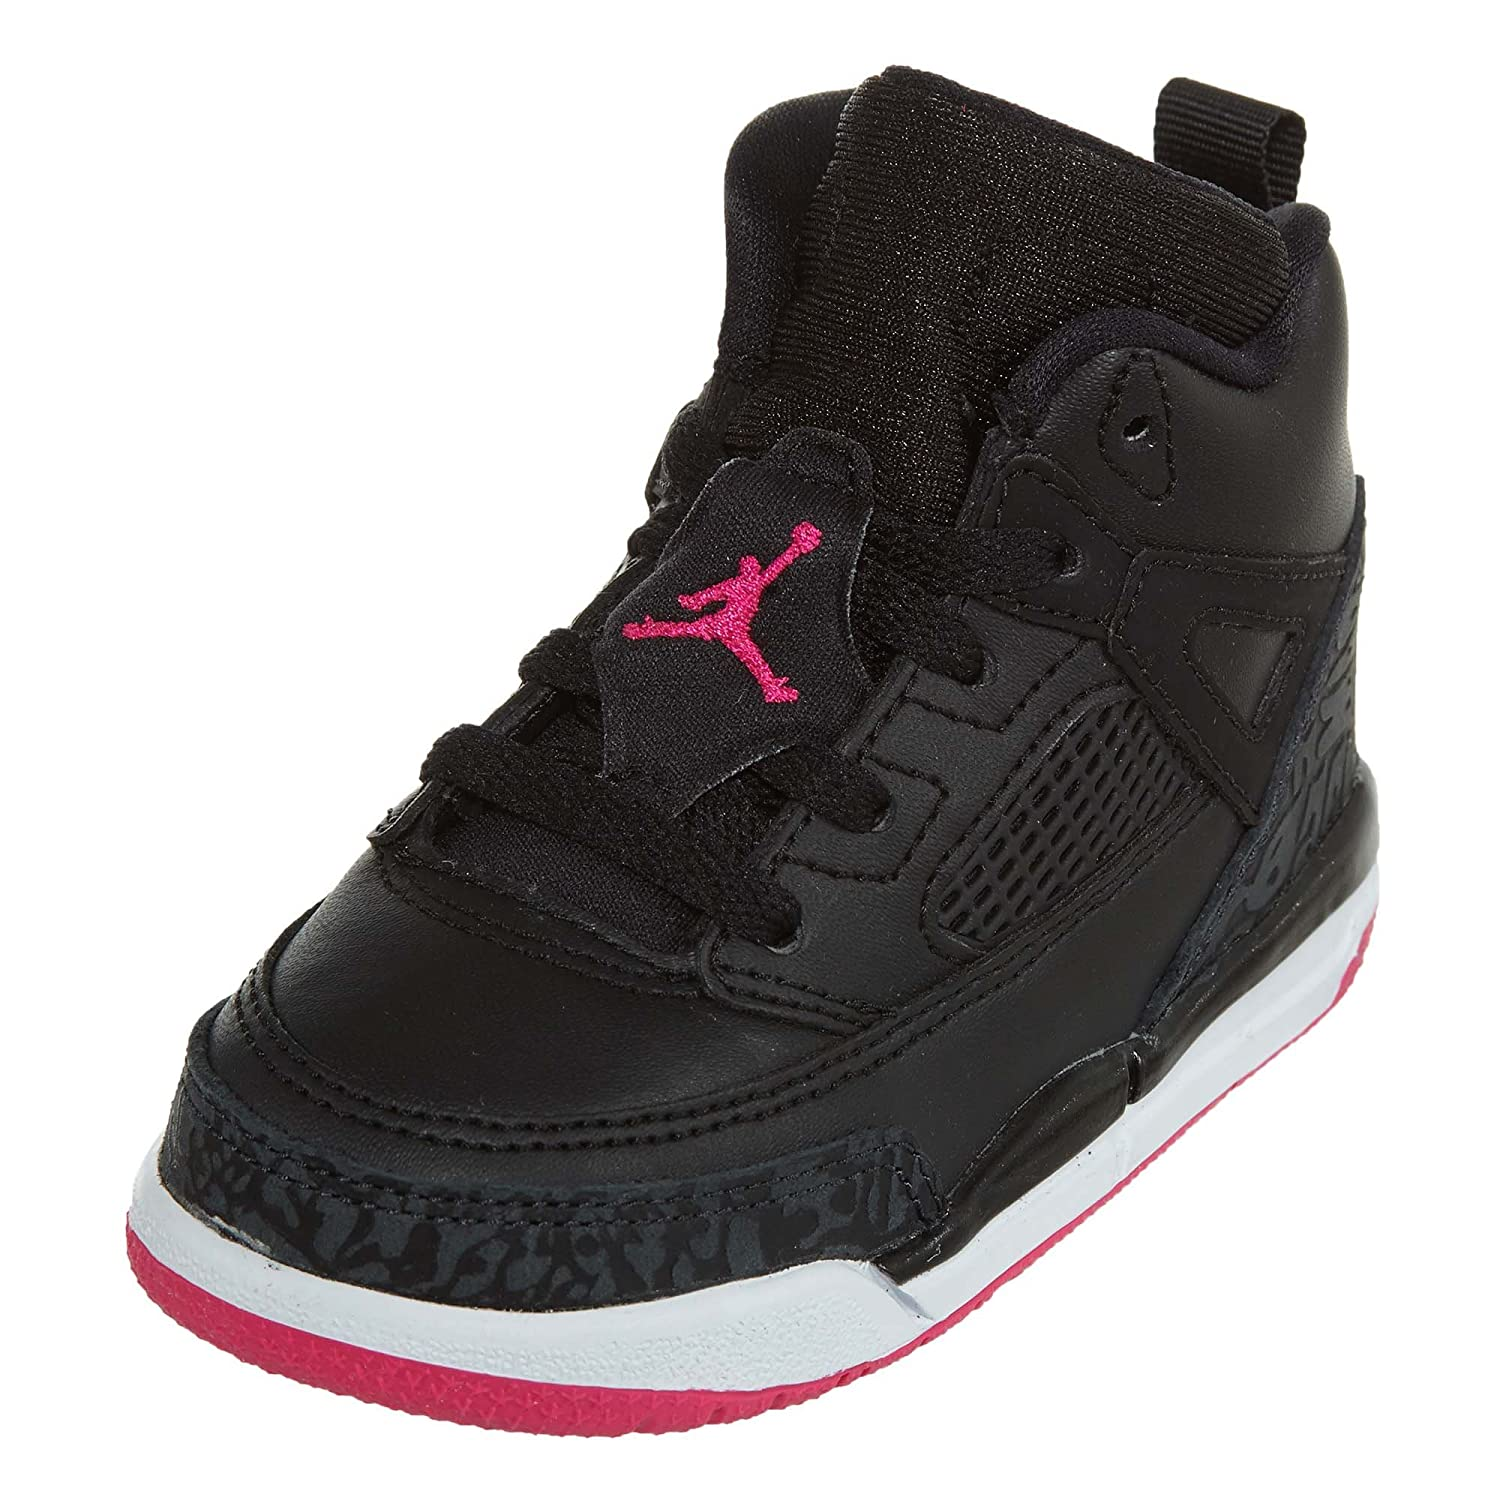 huge selection of 15561 653dc Amazon.com  Jordan Spizike GT Toddler s Running Shoe Black Deadly  Pink-Anthracite 684932-029  Shoes